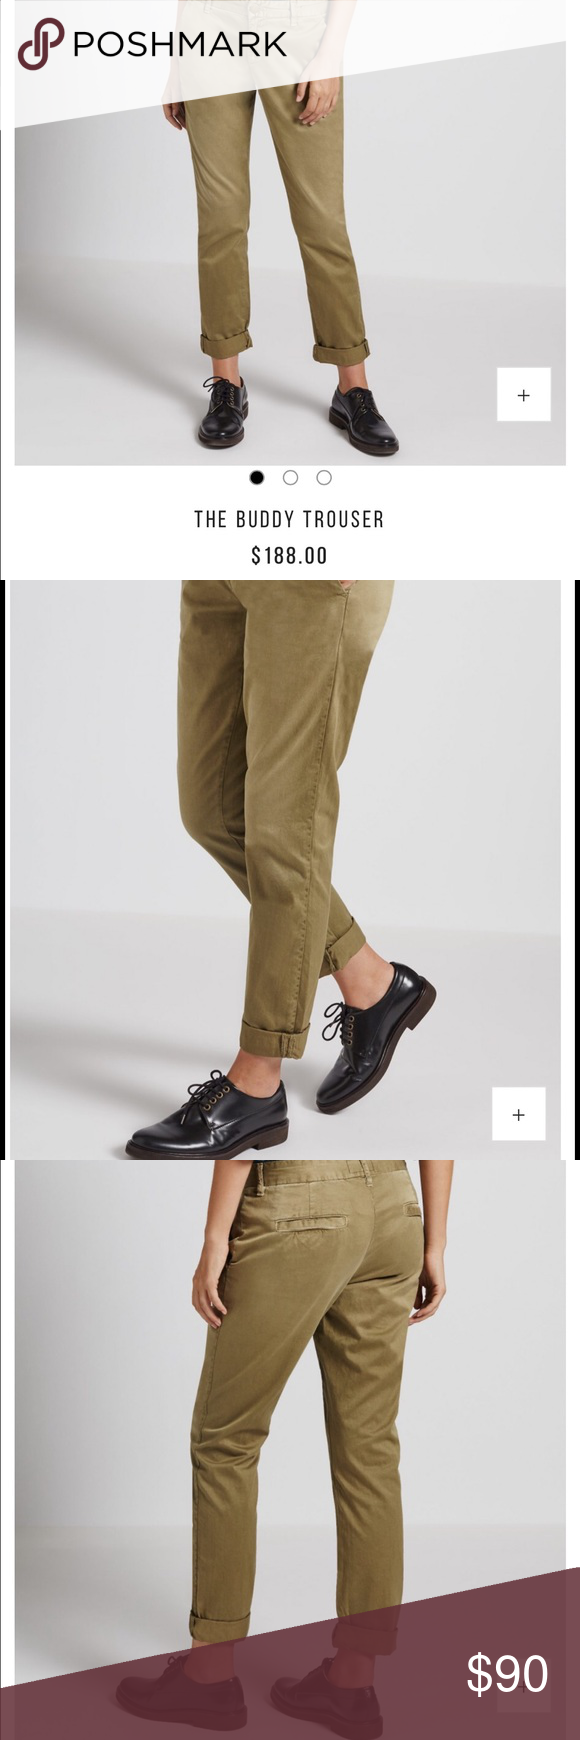 Current/Elliott the Buddy Trouser size 23 Loose fit khakis. Size 23. I typically wear 24/25. A bit lighter in color than khaki pictured. Like new! Only worn a couple times Current/Elliott Pants Ankle & Cropped